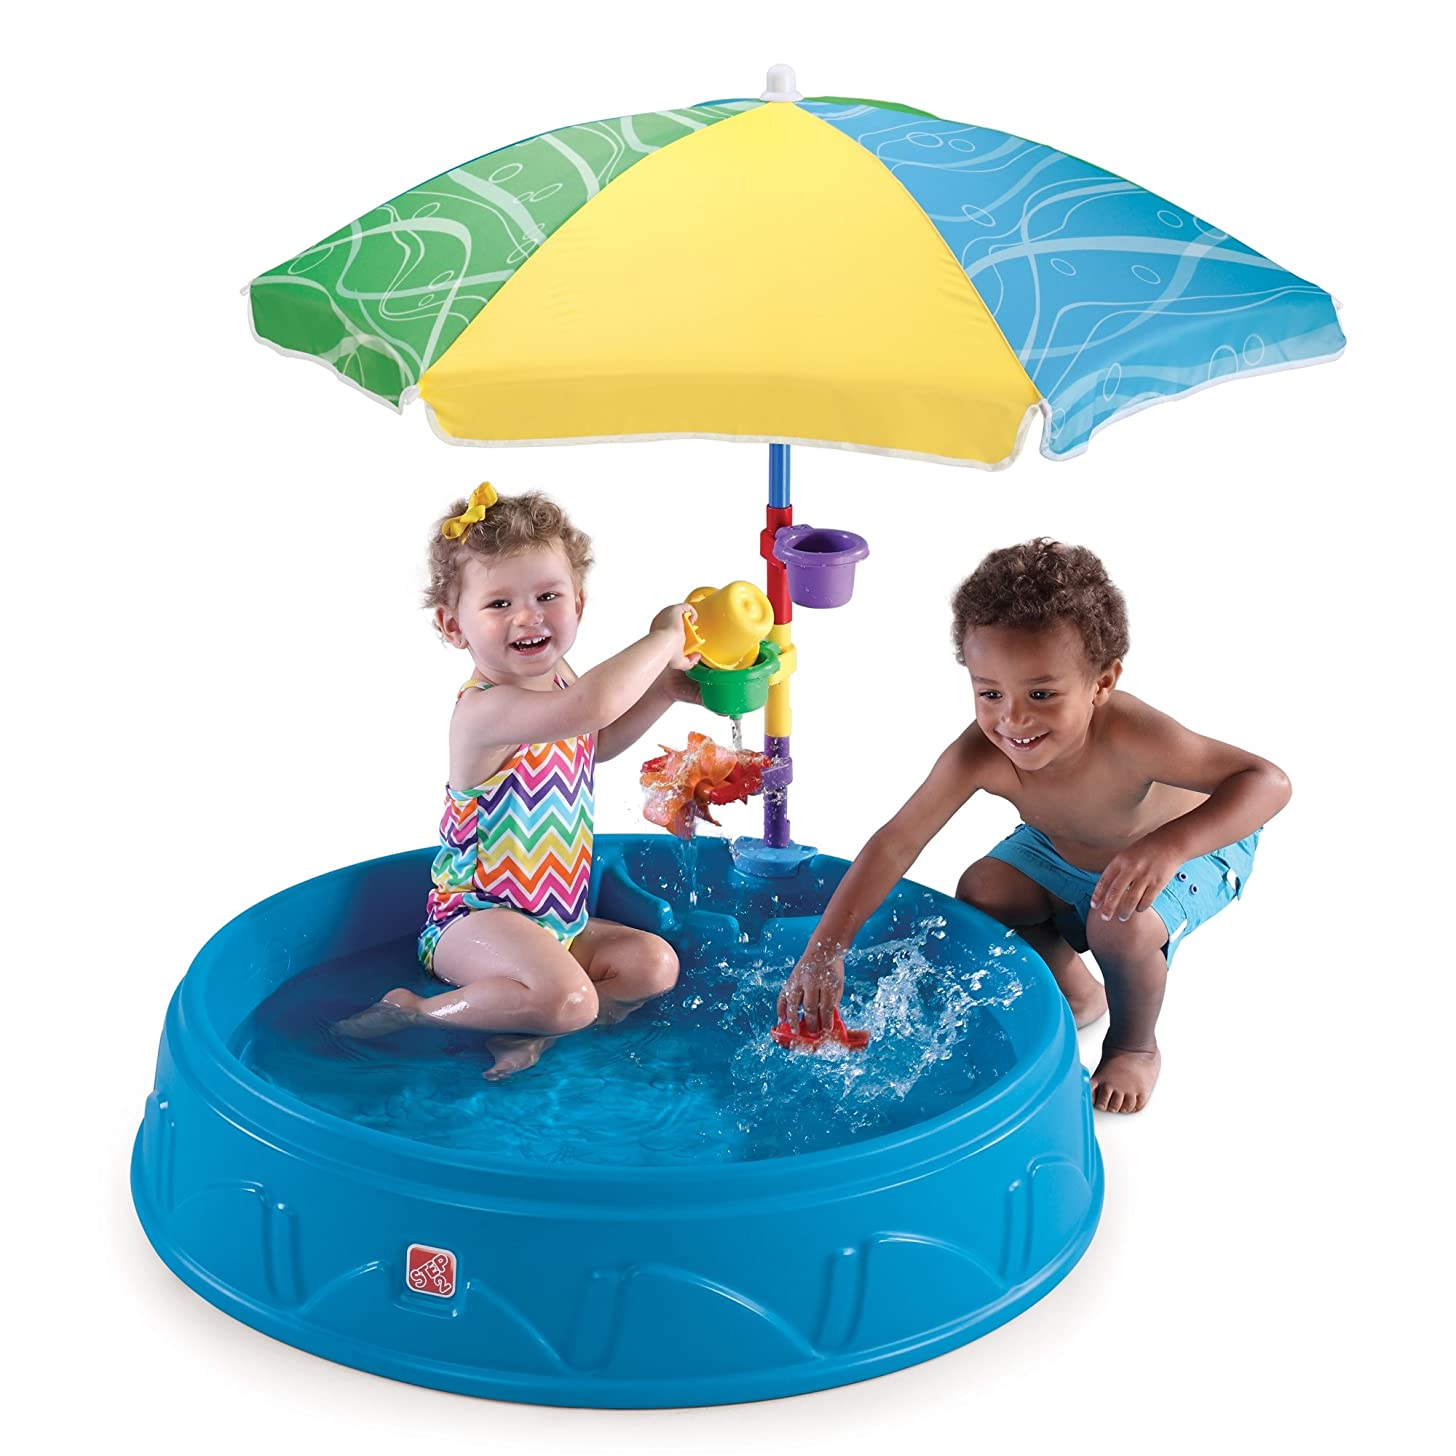 Step2 Play & Shade Pool   Kids Outdoor Pool with Umbrella & Water Toy Accessories